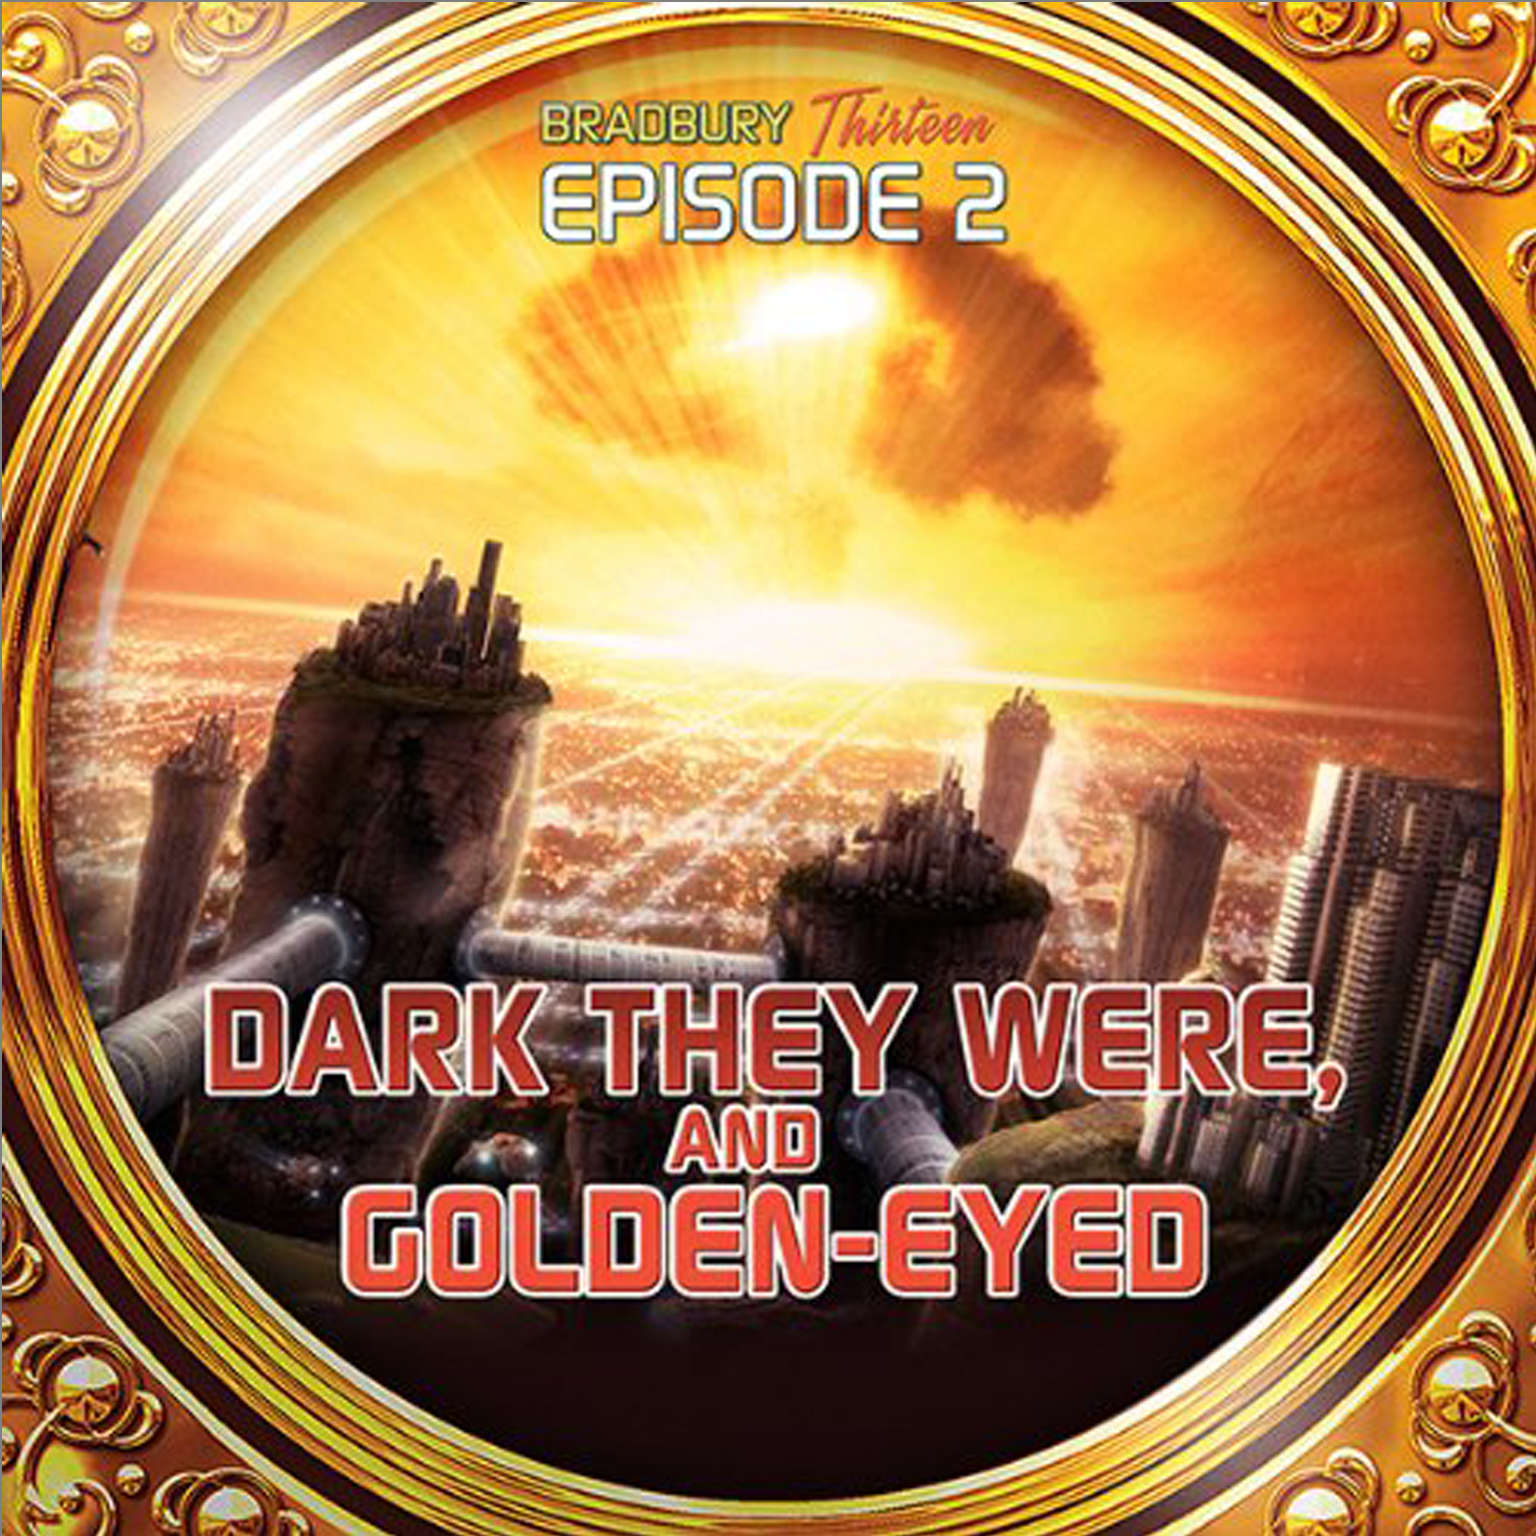 an analysis of science fiction in dark they were and golden eyed Eng 11 - reading list - stories  july 29 science fiction dark they were and golden-eyed  guide literary analysis uploaded by shan_vega.